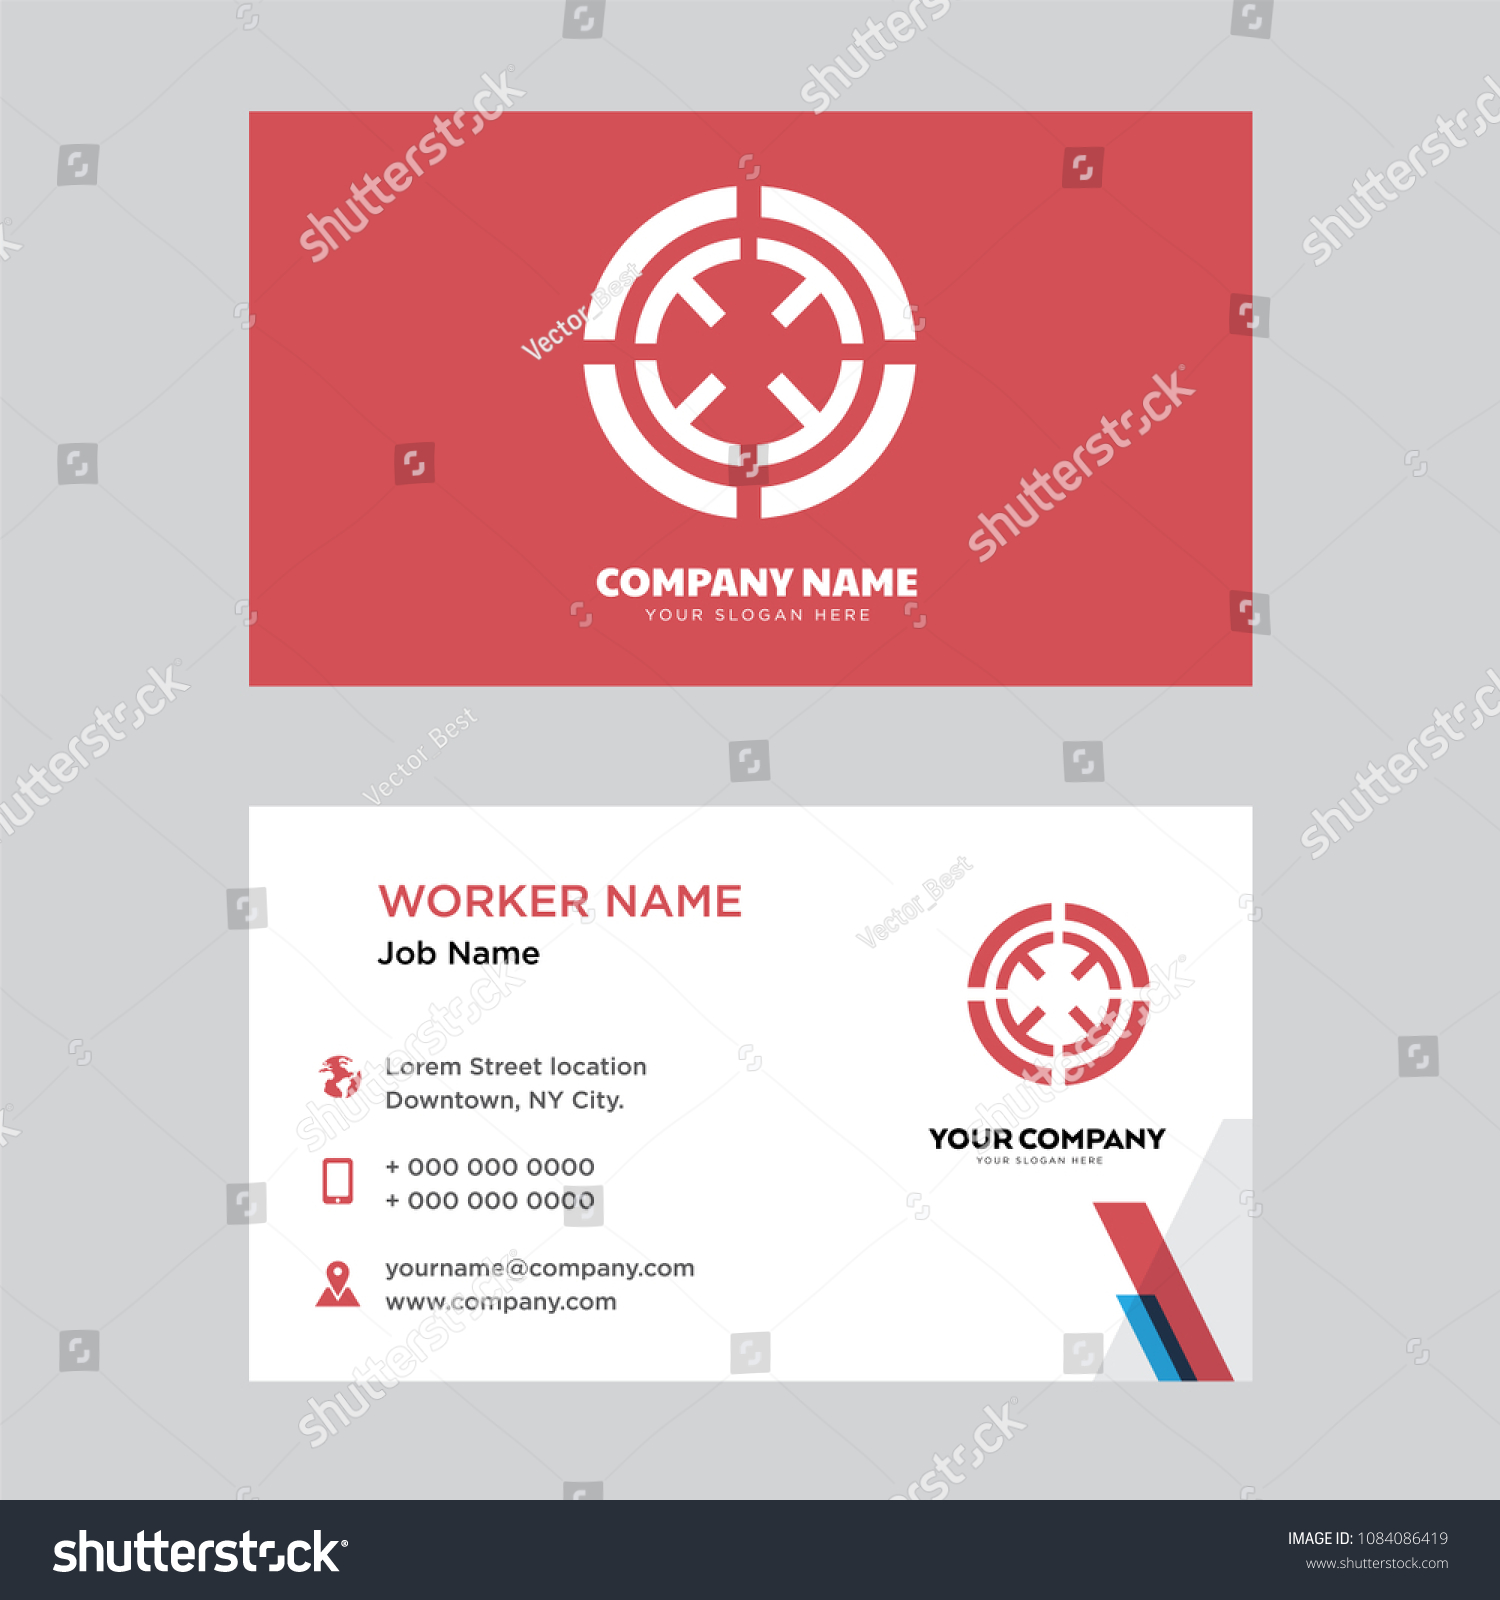 Target Business Card Design Template Visiting Stock Vector HD ...